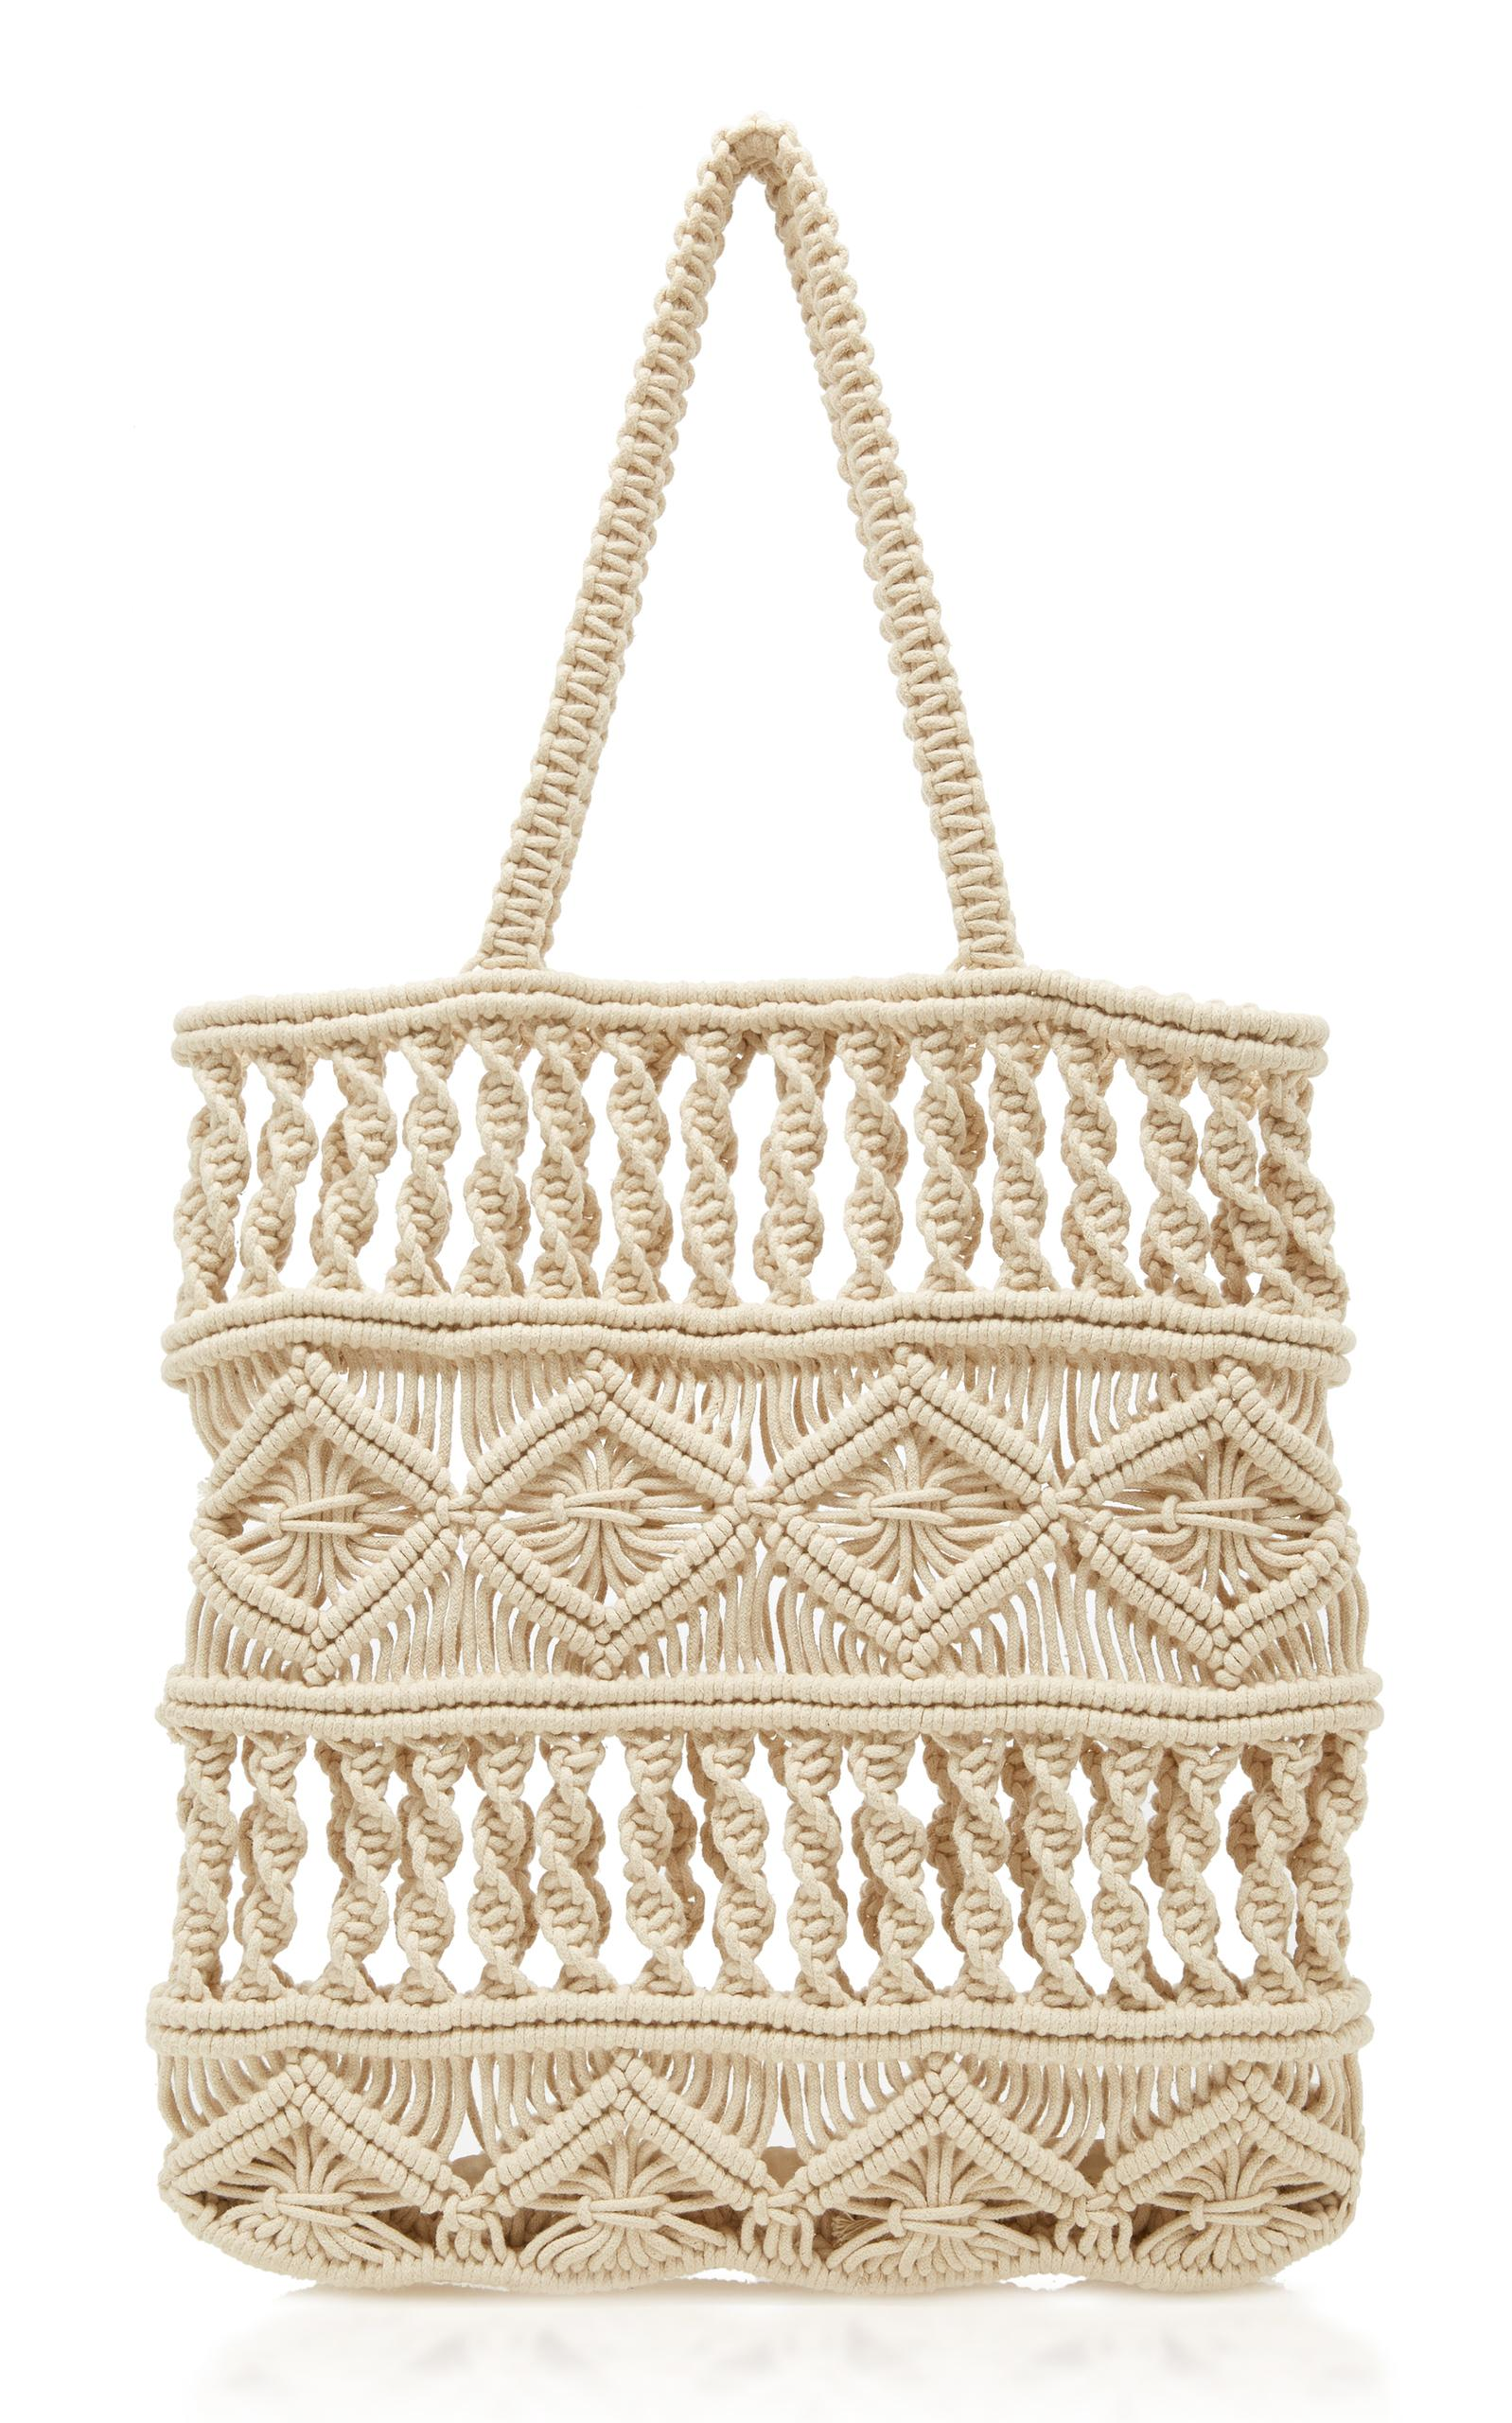 Rae Feather Multi Weave Macrame Shoulder Bag In Neutral